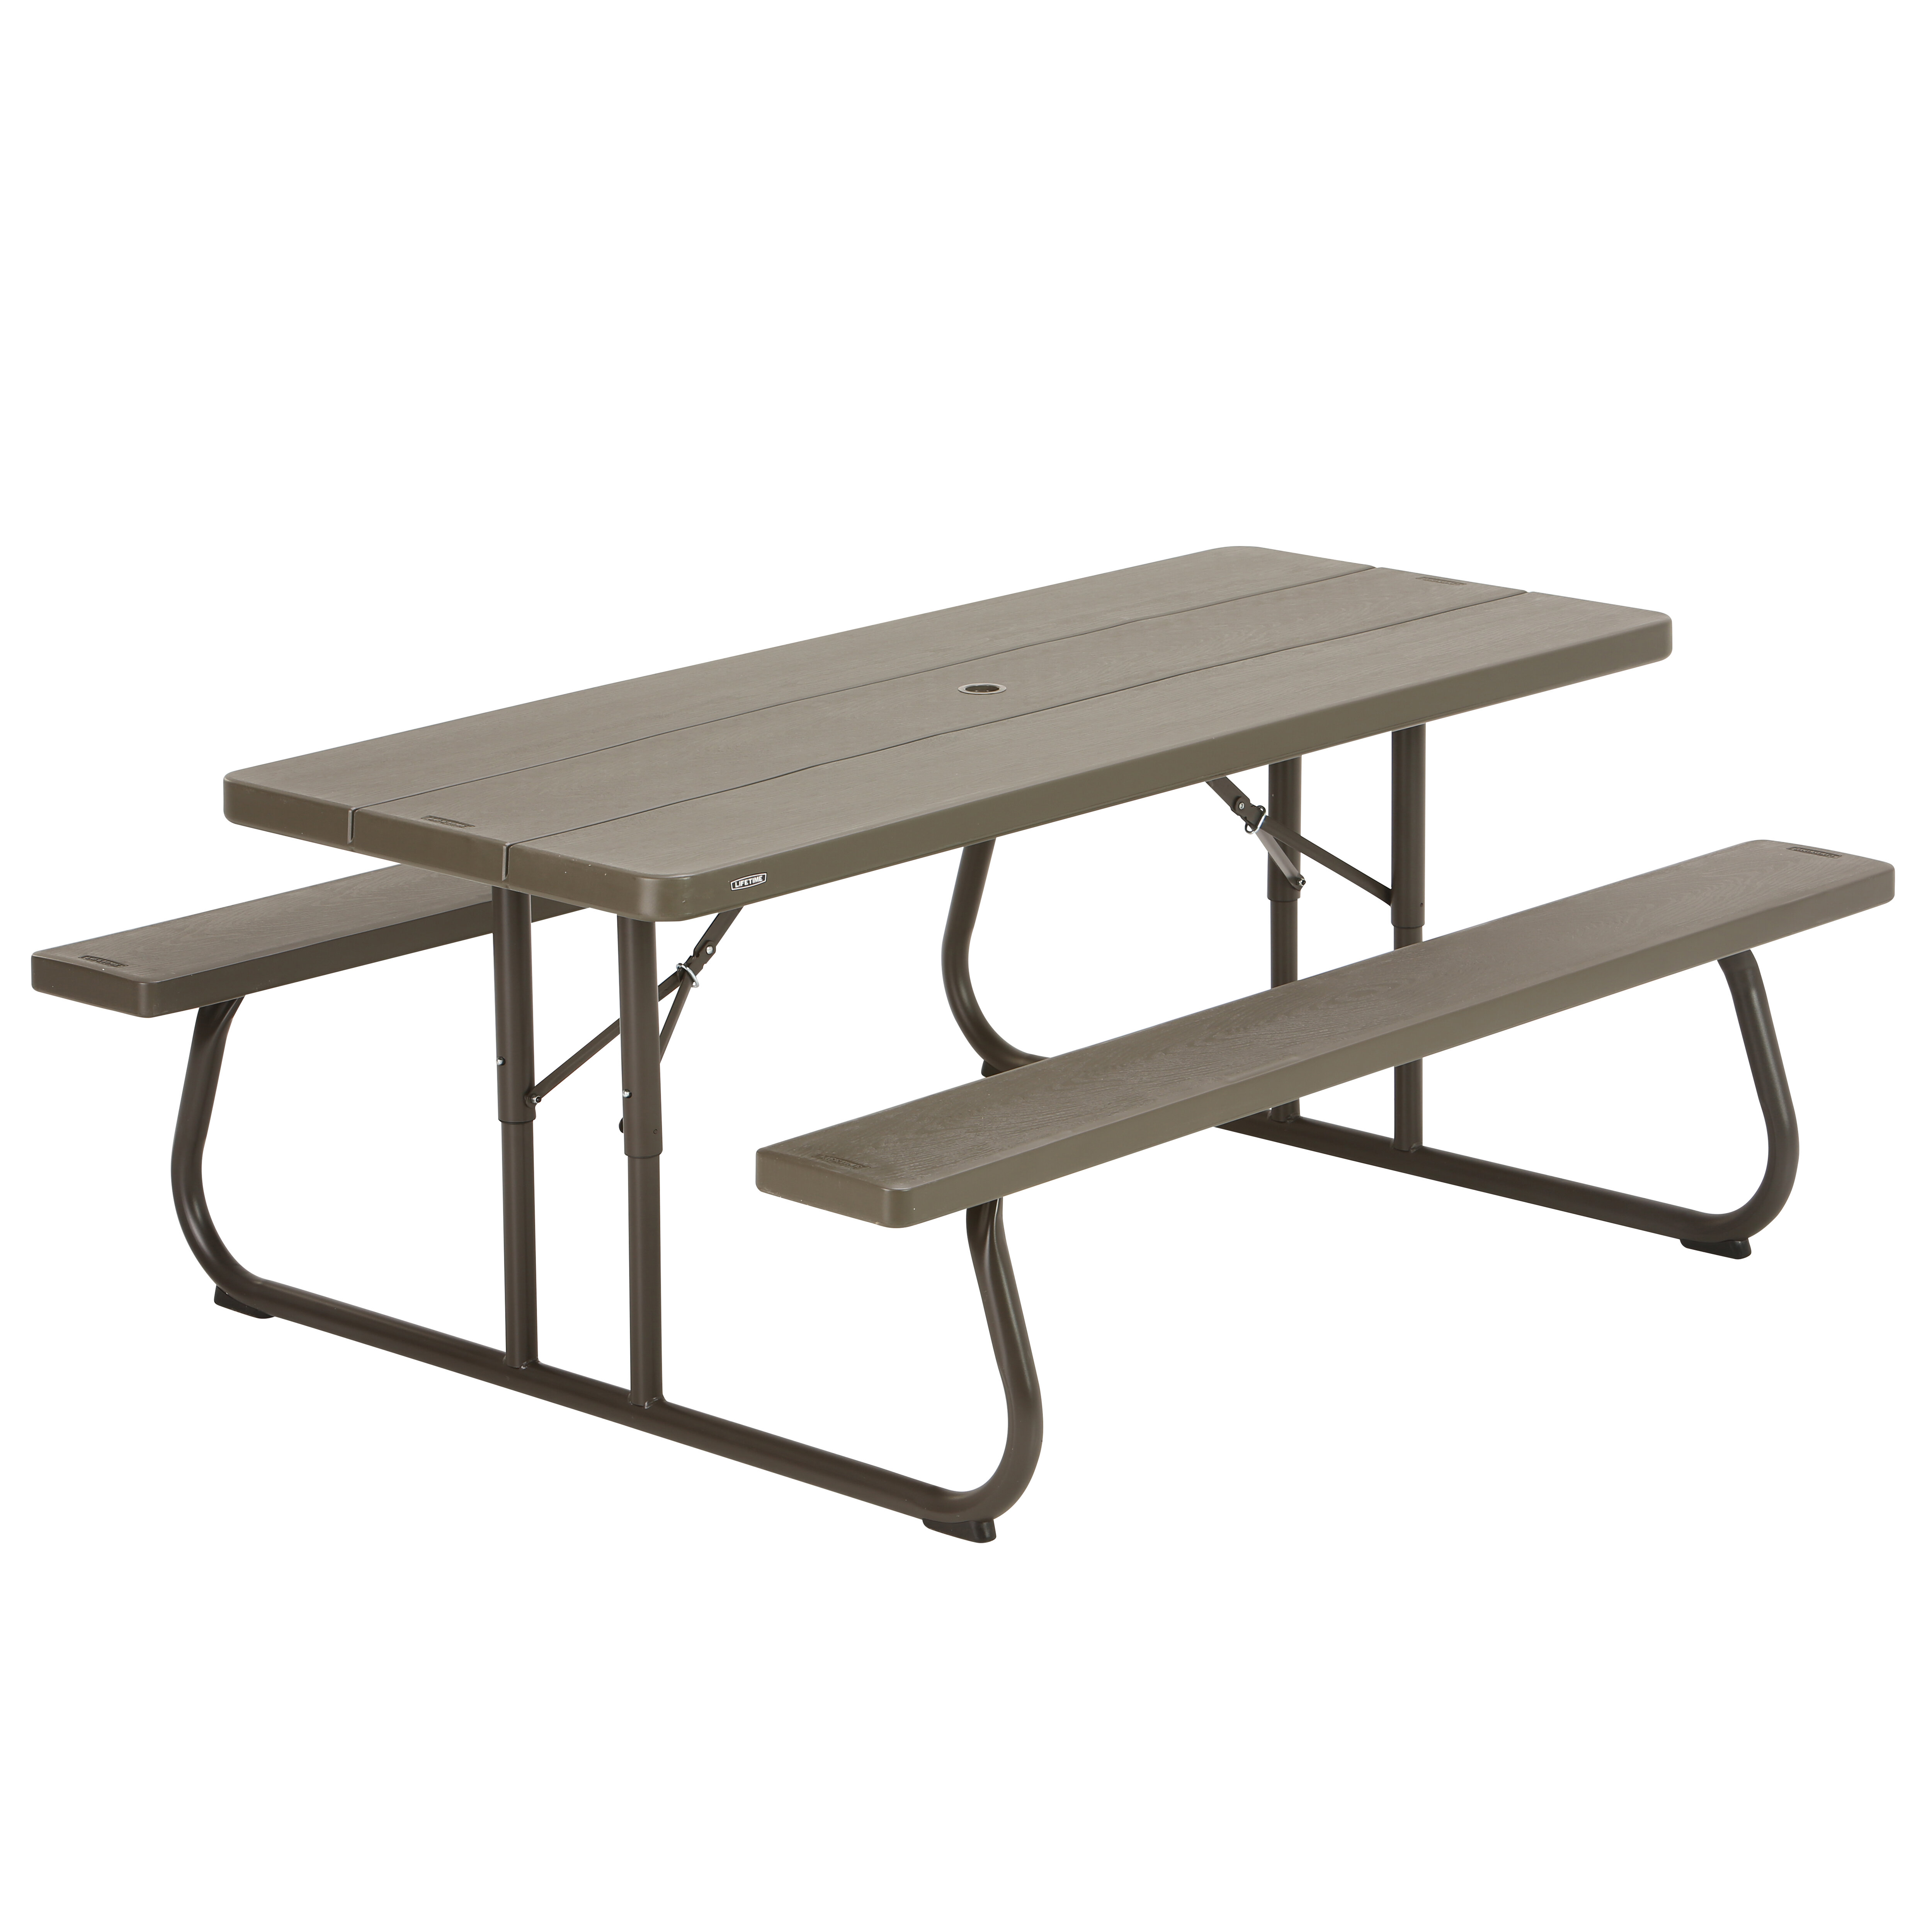 Terrific Lifetime Plastic Resin Picnic Table Reviews Wayfair Onthecornerstone Fun Painted Chair Ideas Images Onthecornerstoneorg